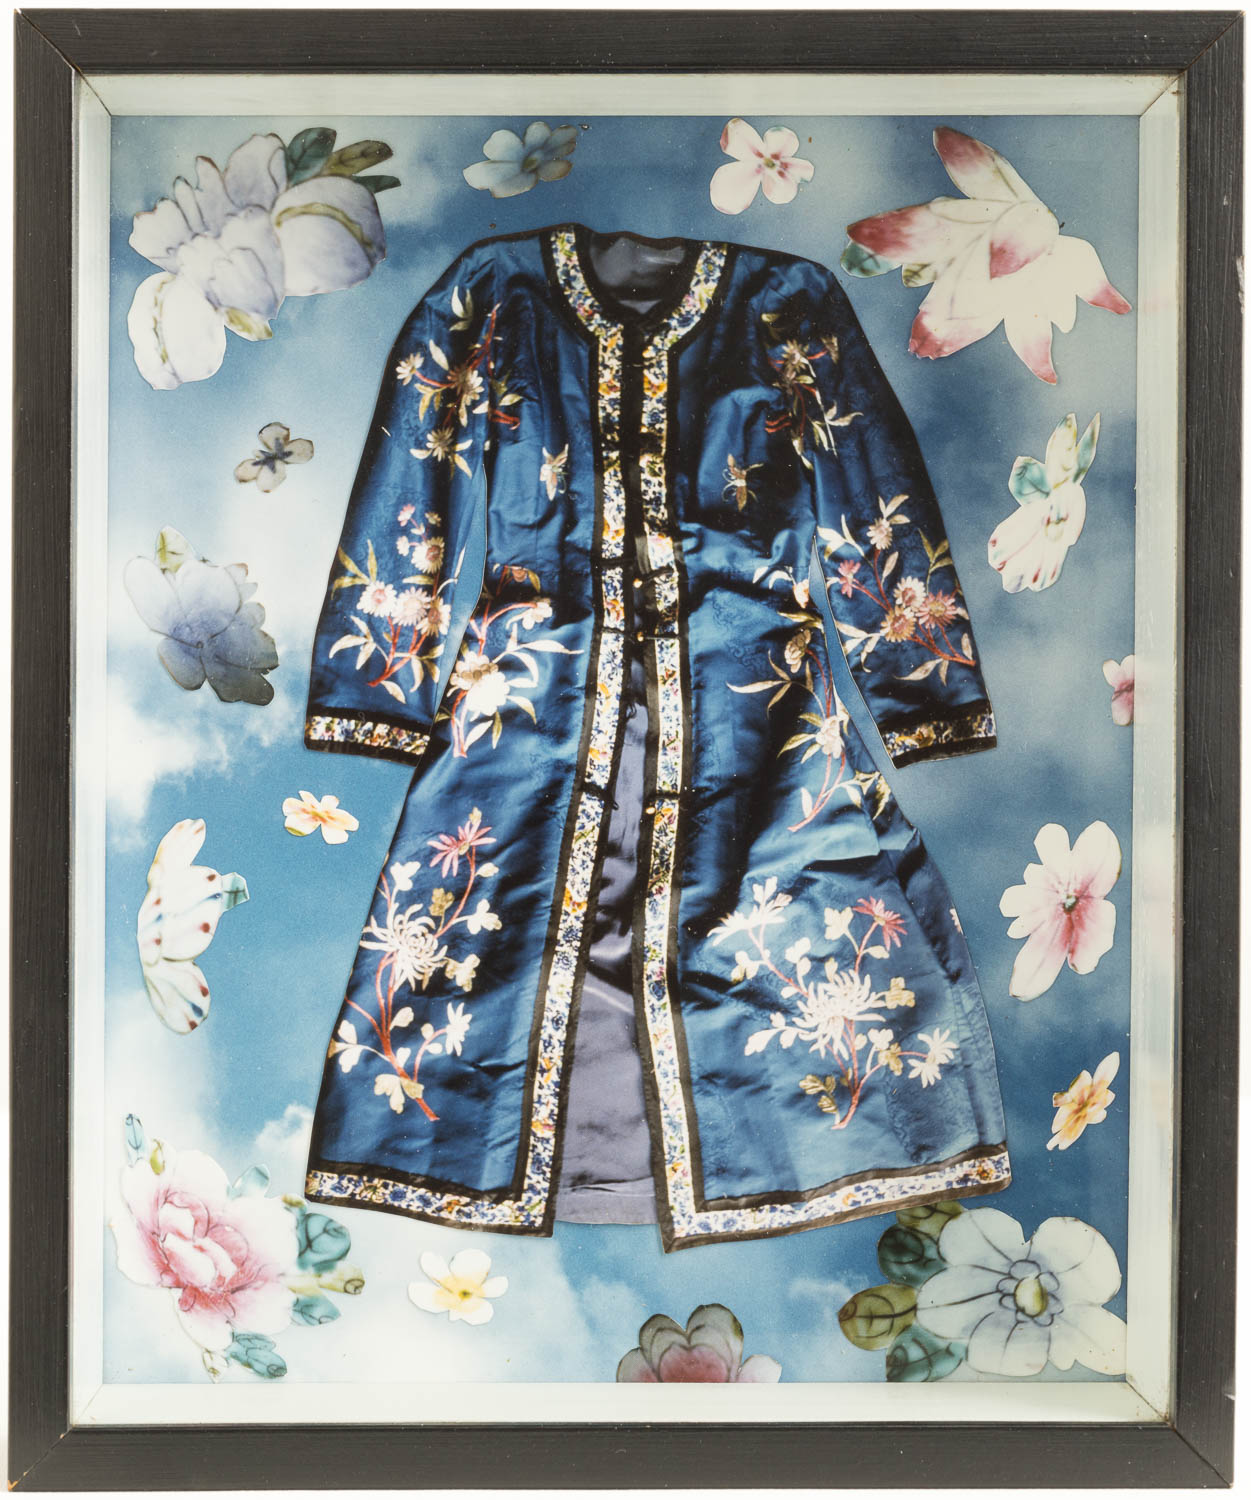 'China Coat' 1982. From 'The Coats of Deception' series